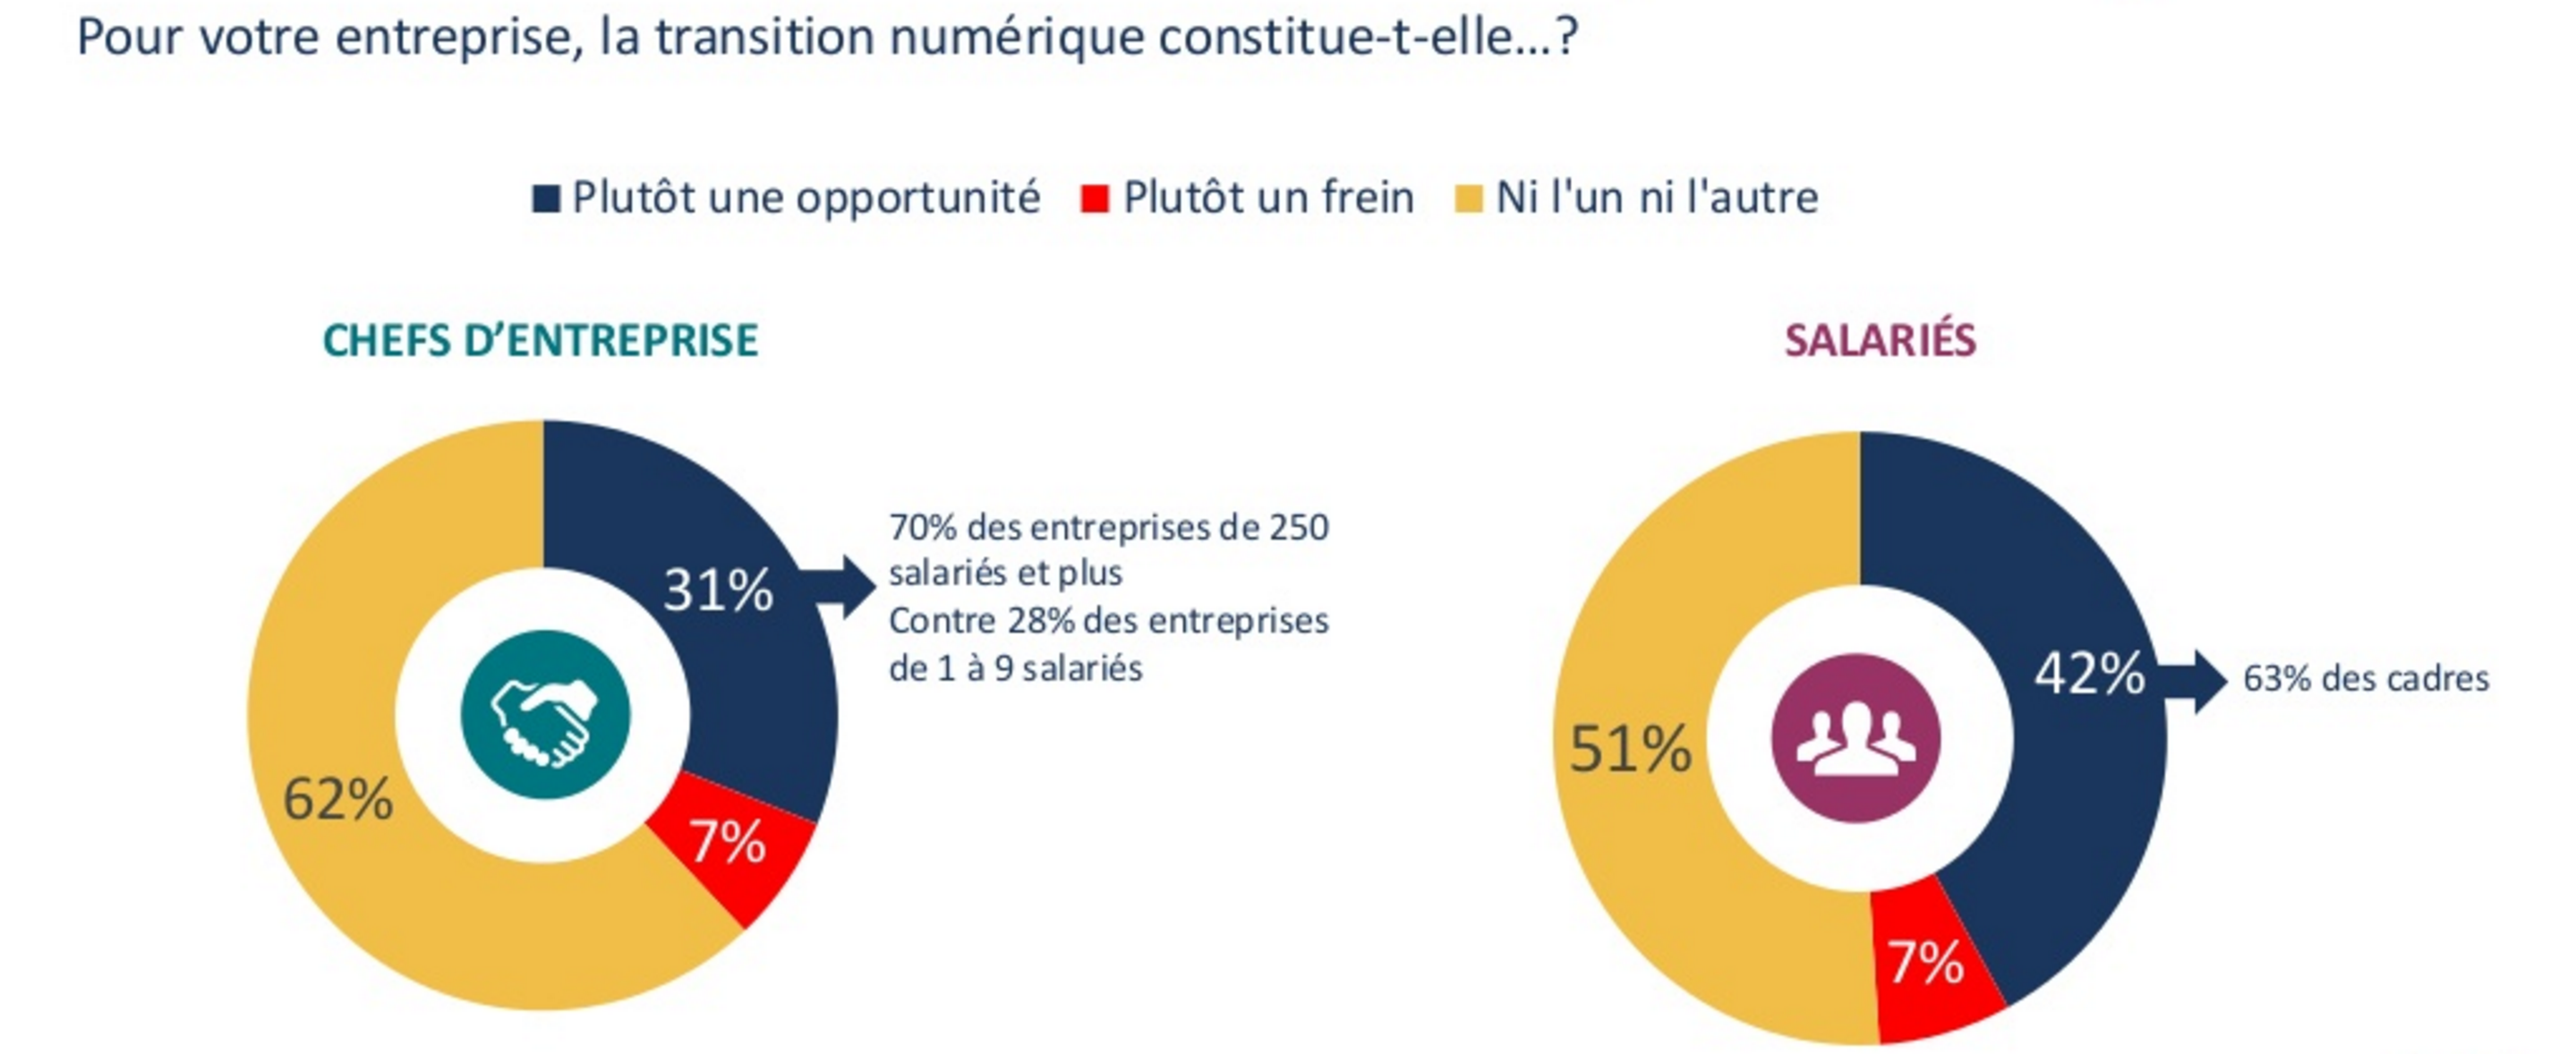 La transformation digitale et les dirigeants